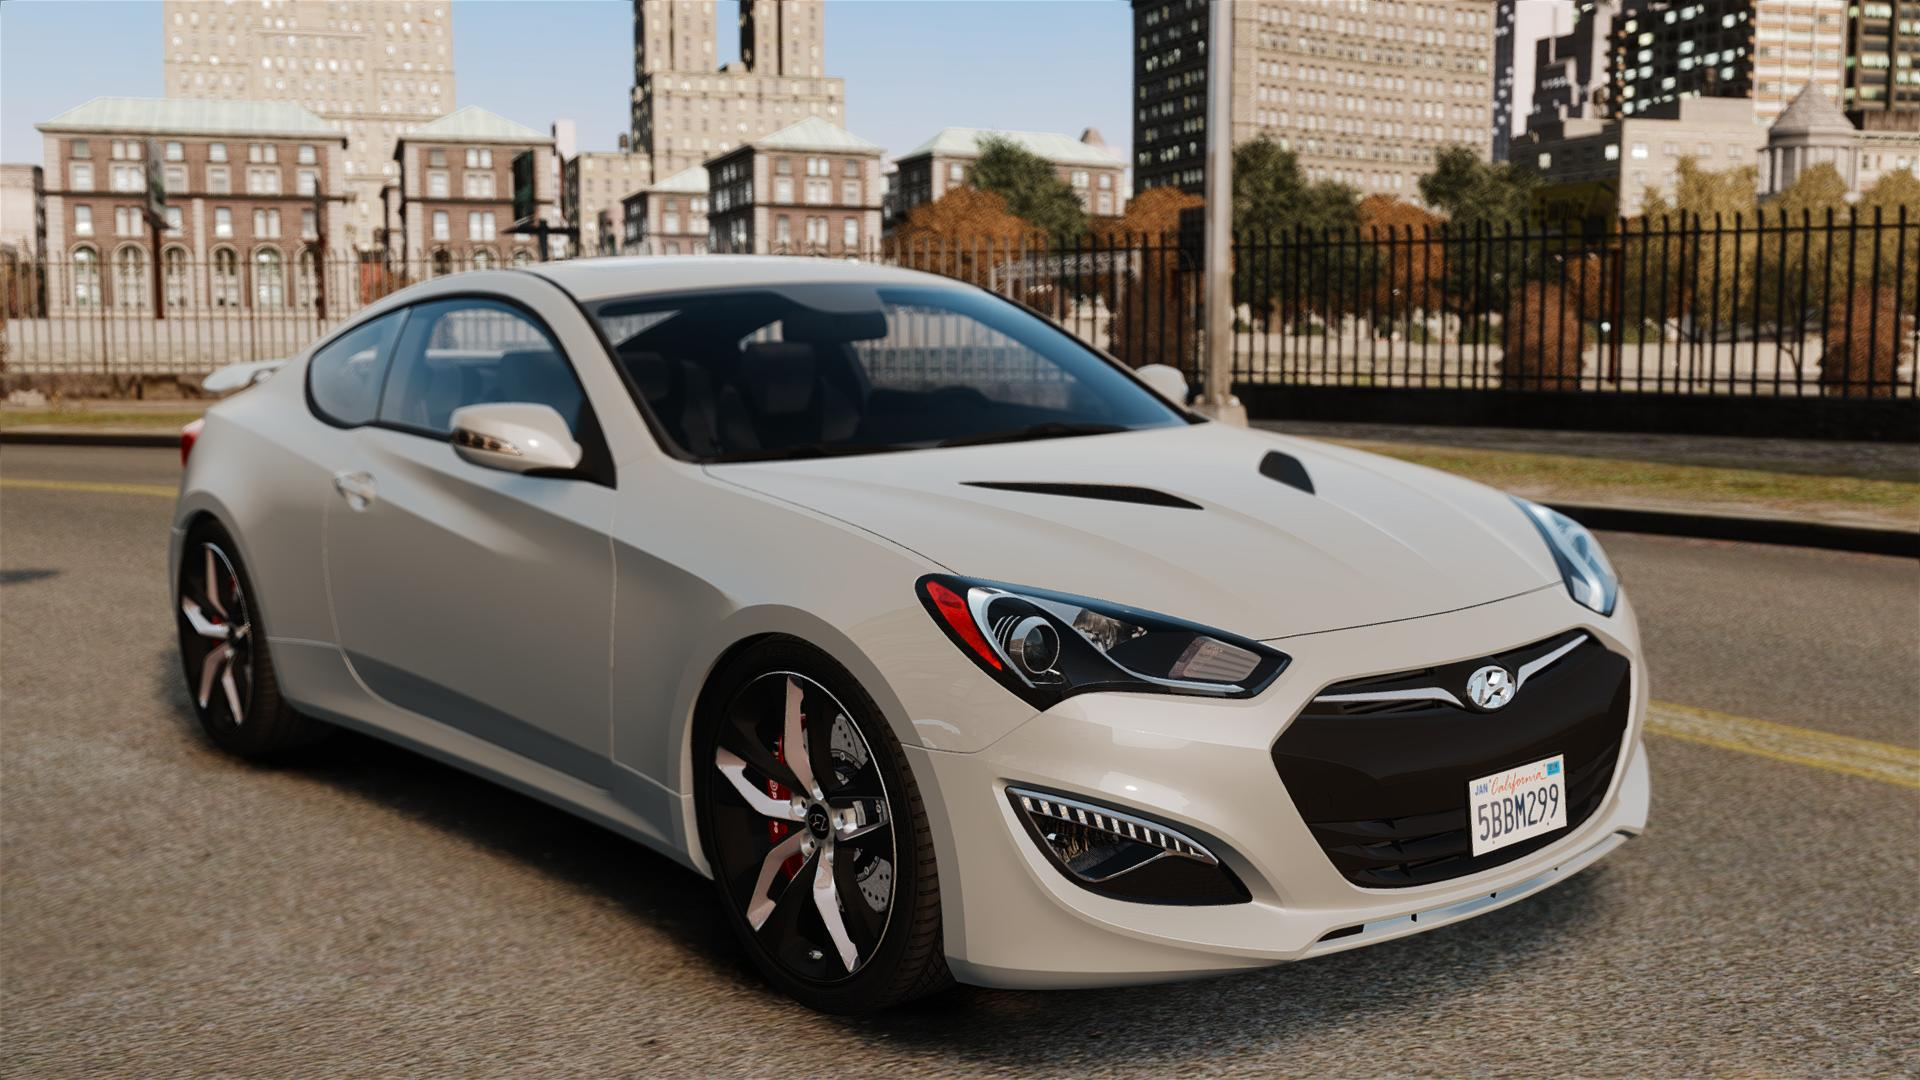 genesis coupe nitrous remake a on builds features kit hyundai widebody btr